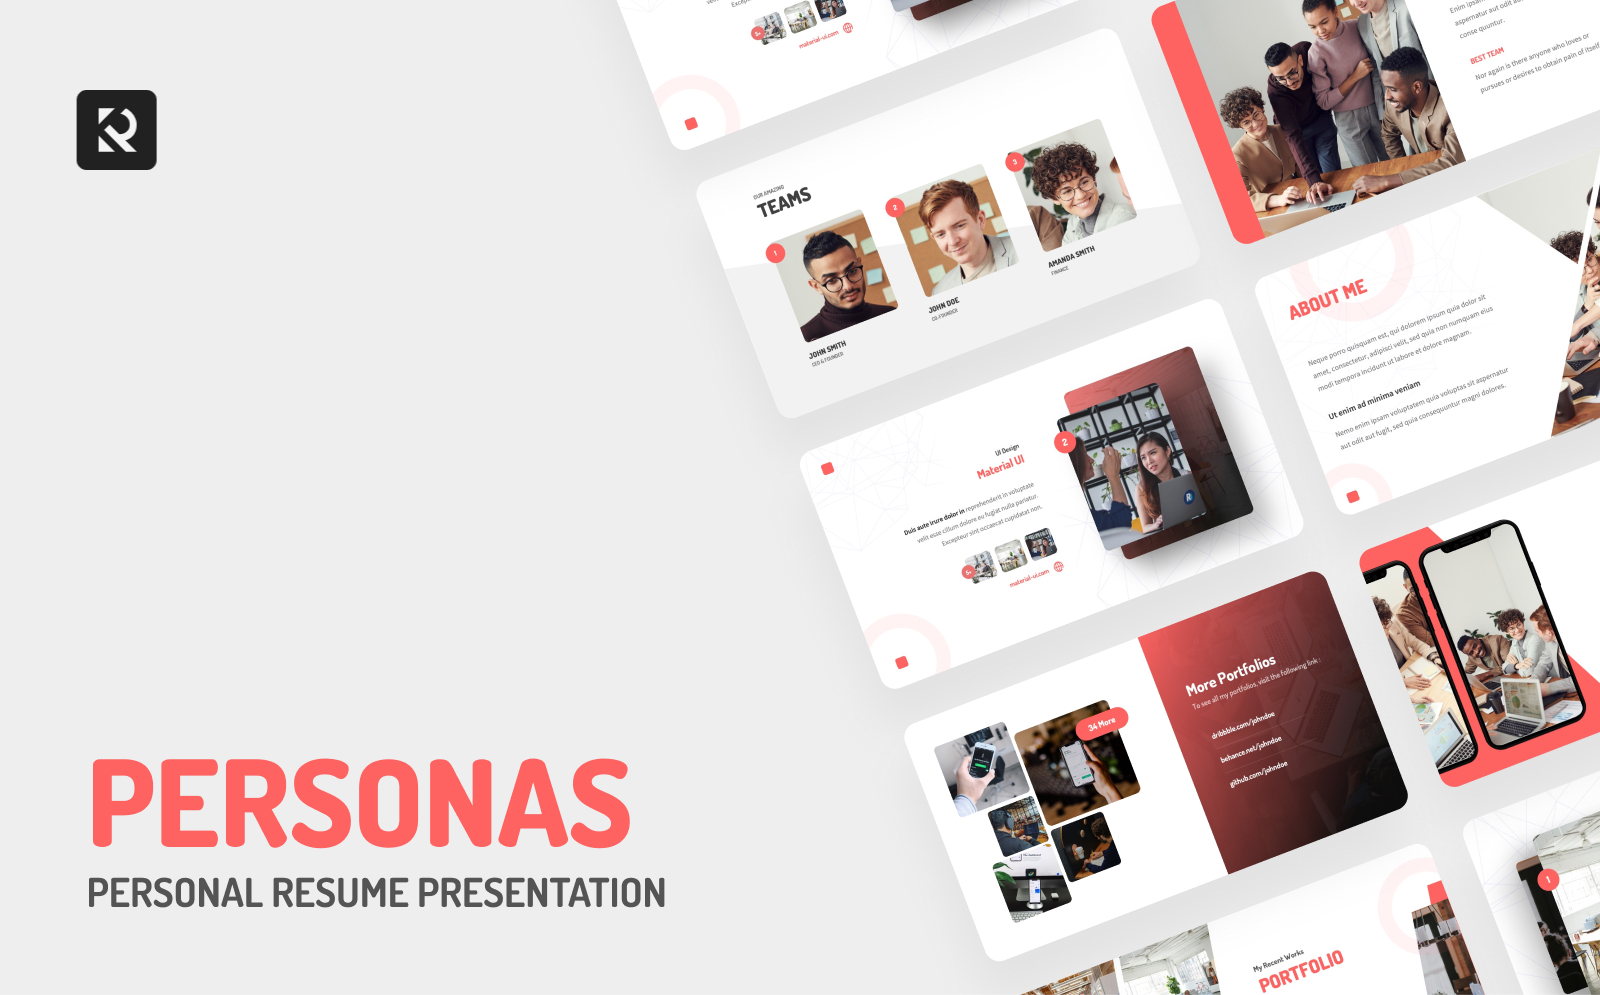 Personas Personal Resume PowerPoint Template